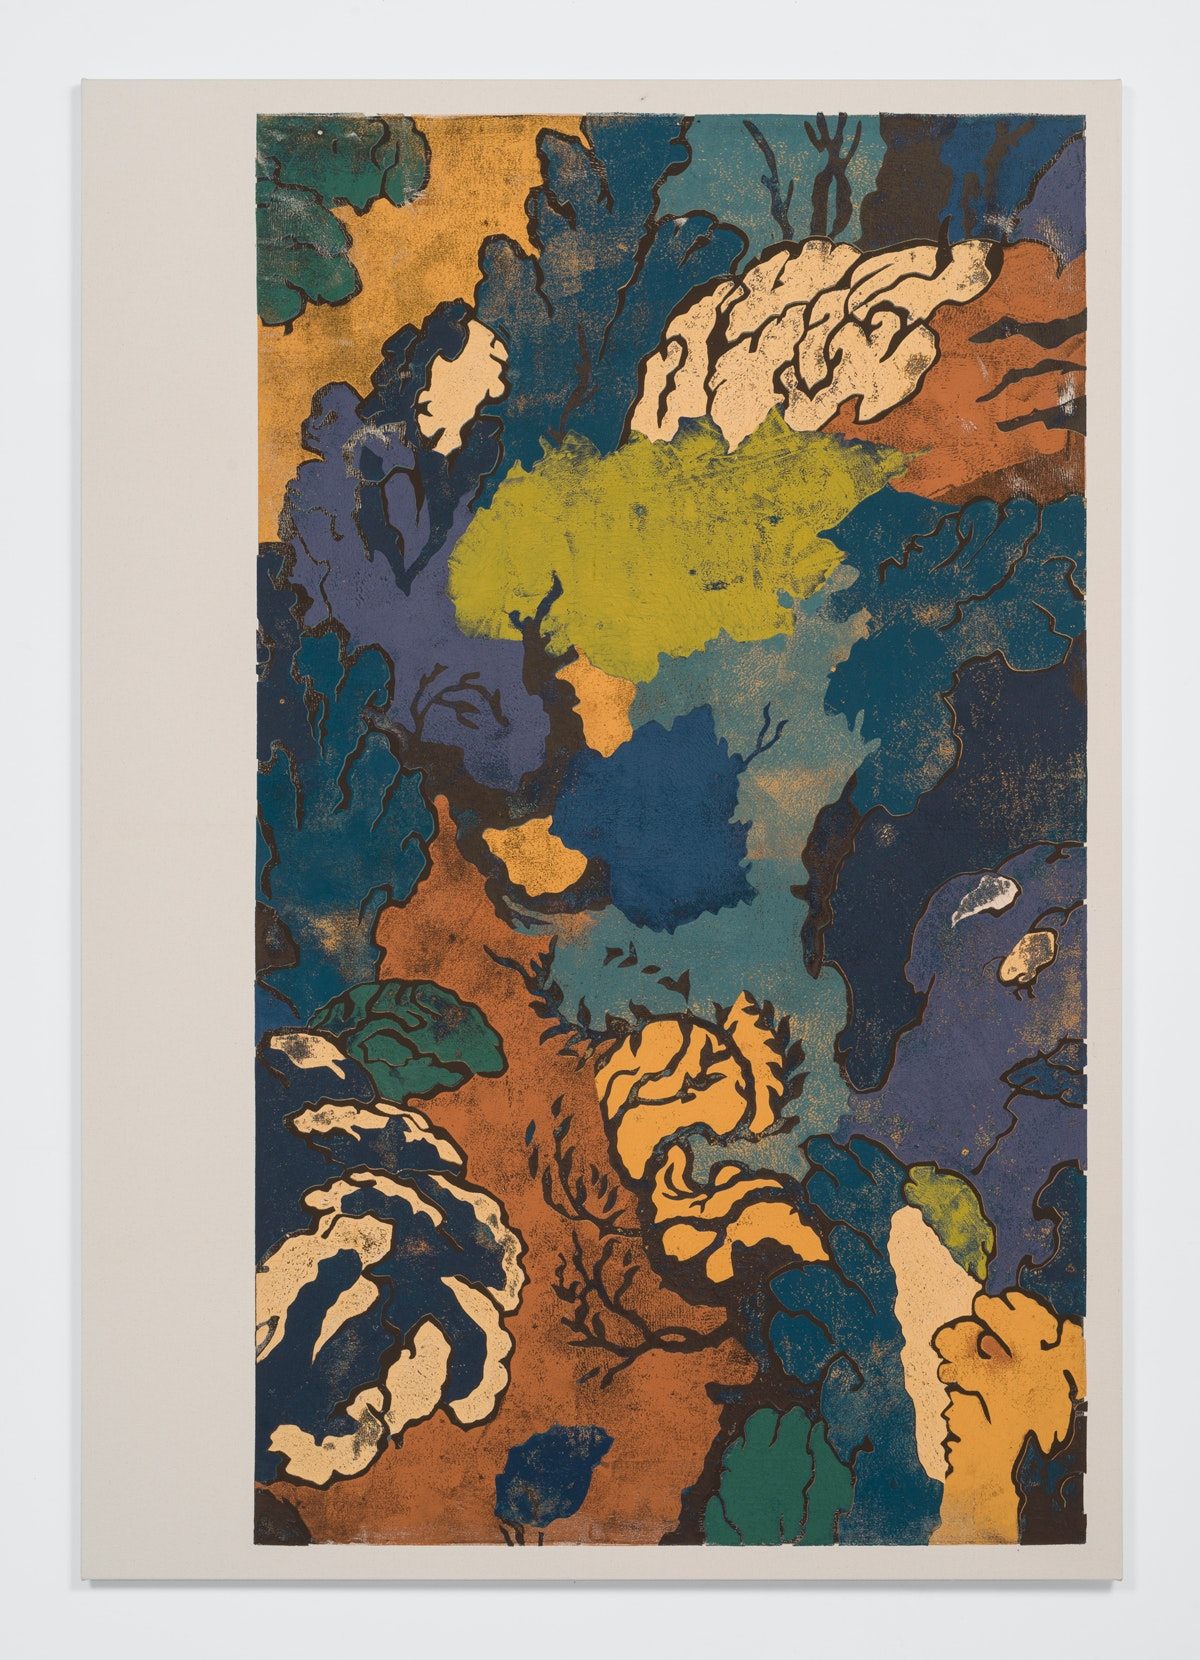 Kour Pour, <em>Persian Landscape (Crop)</em>, 2018. Block printing ink on canvas. 84.25 x 58.5 inches. Courtesy the artist and Ever Gold [Projects].